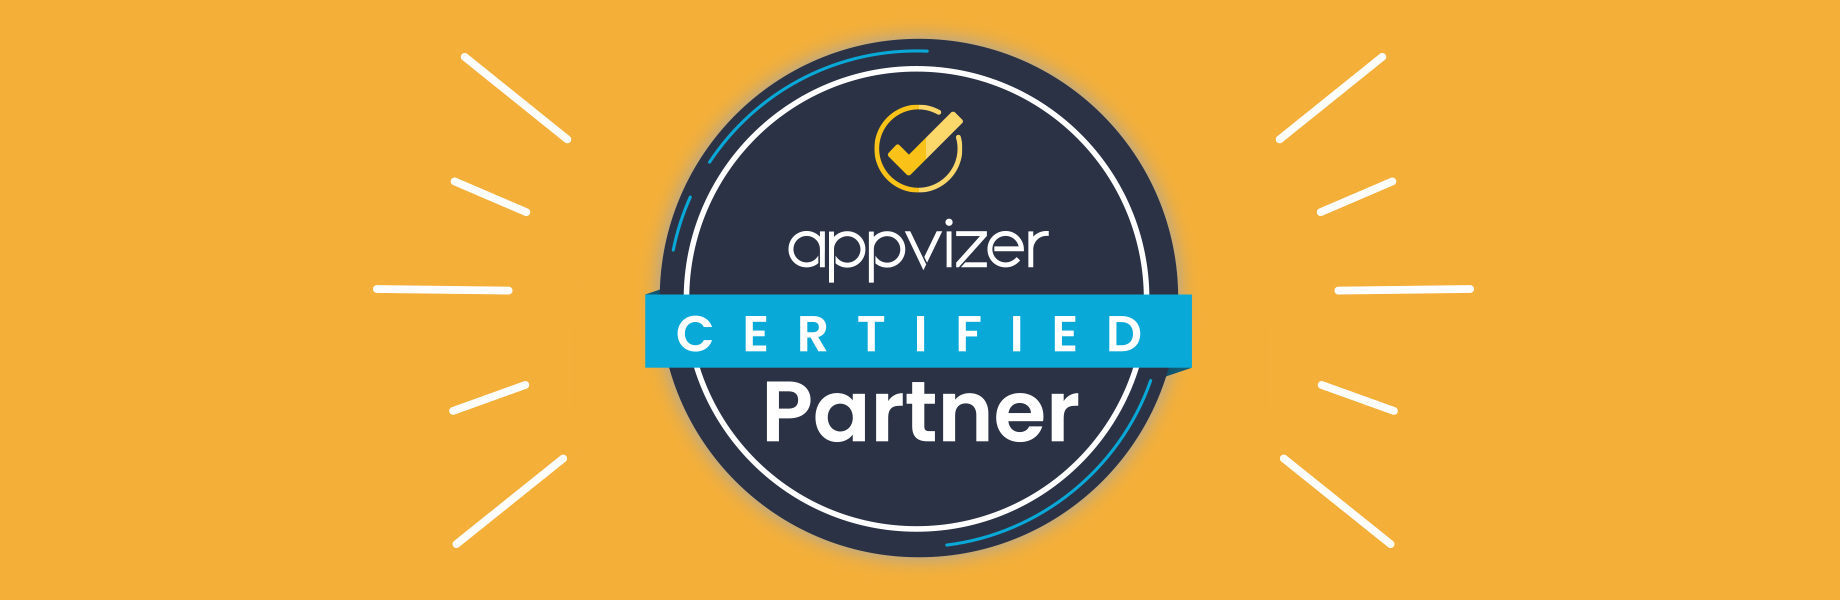 Why is a Certified Partner appvizer badge assigned to a software?